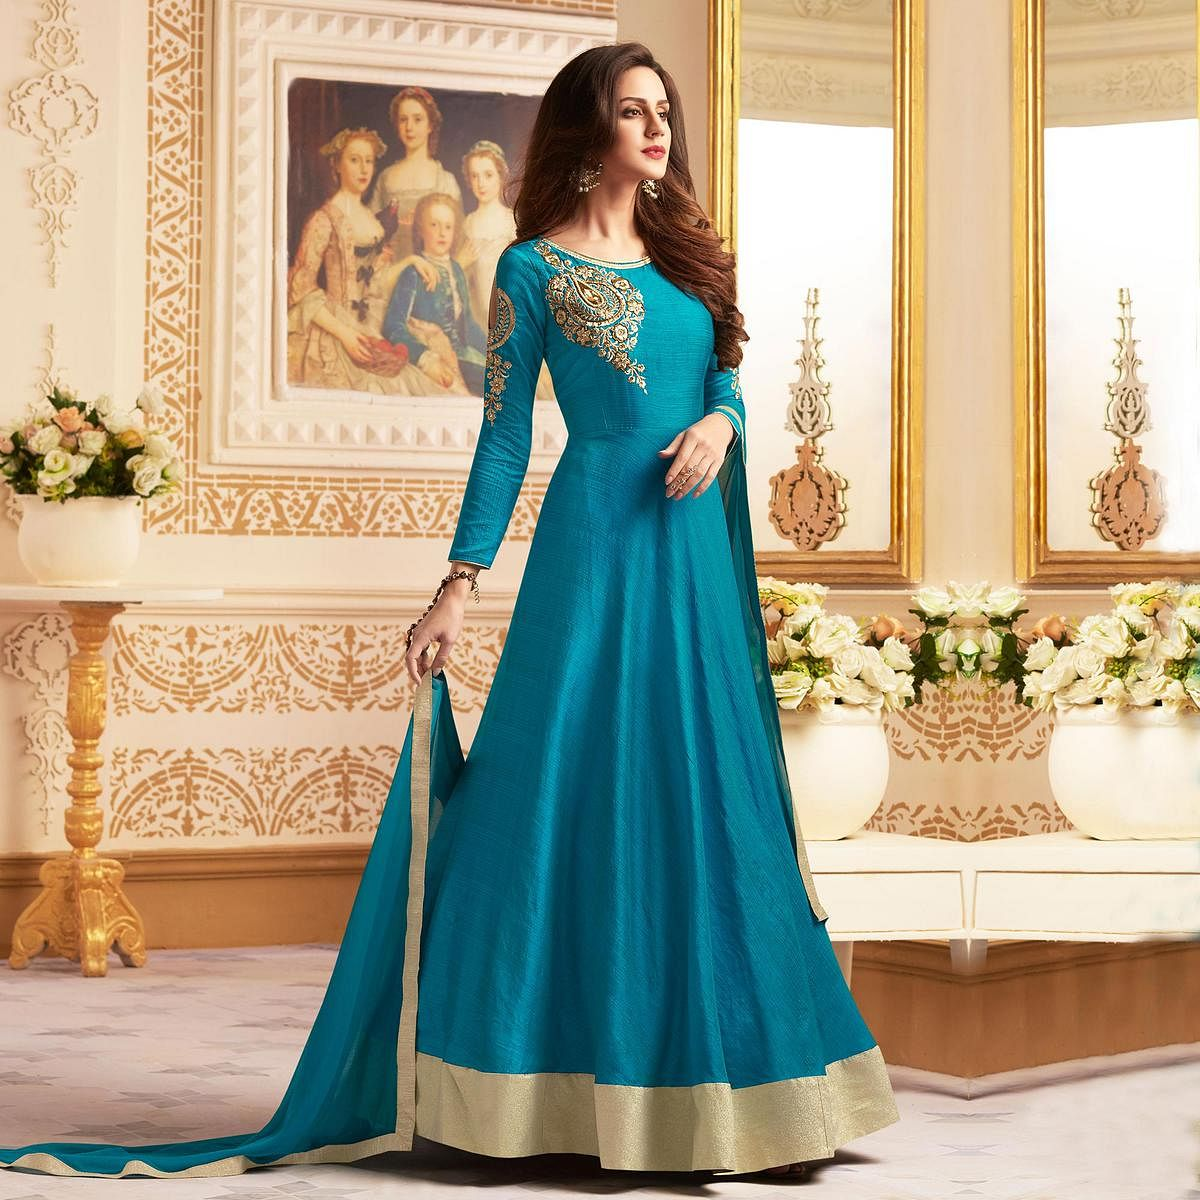 Mesmerising Teal Blue Colored Designer Embroidered C-N Banglori Silk Anarkali Suit